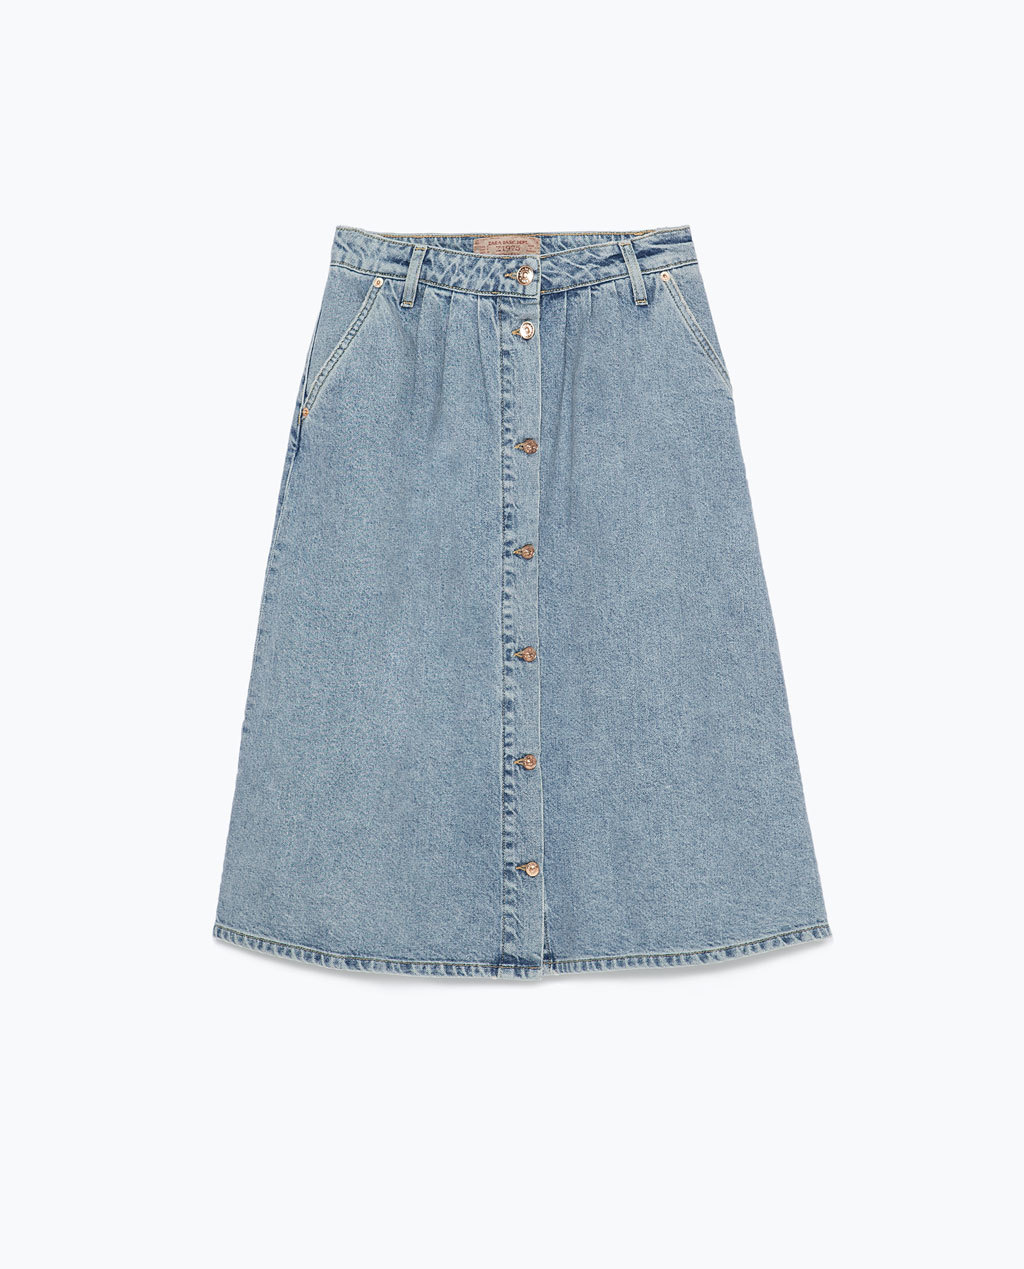 Long Denim Skirt - length: below the knee; pattern: plain; fit: loose/voluminous; waist: high rise; predominant colour: denim; occasions: casual, creative work; style: a-line; texture group: denim; pattern type: fabric; trends: alternative denim, seventies retro; season: s/s 2015